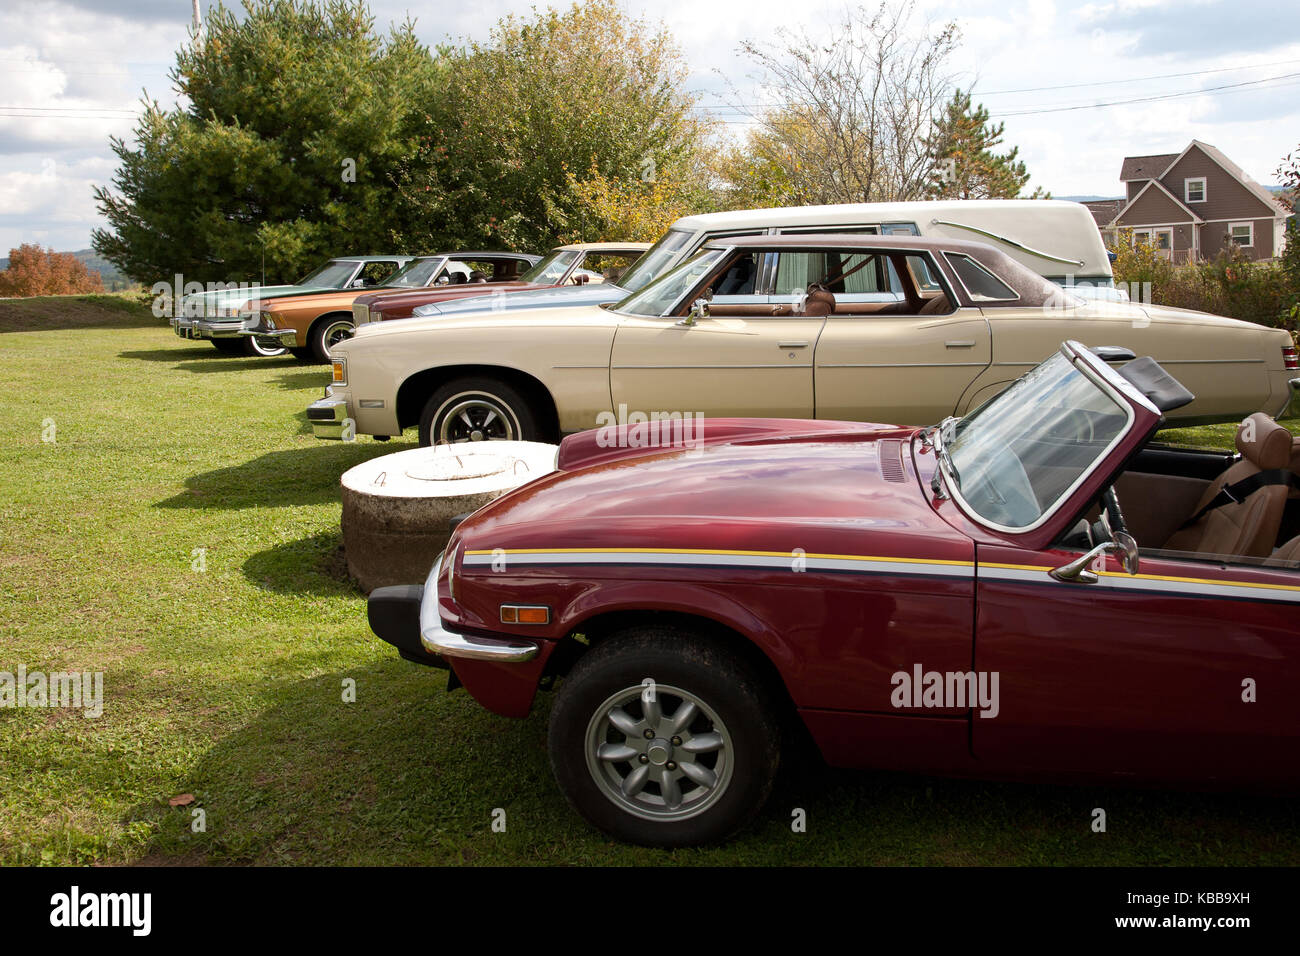 Exterior With Antique Cars Stock Photos & Exterior With Antique Cars ...